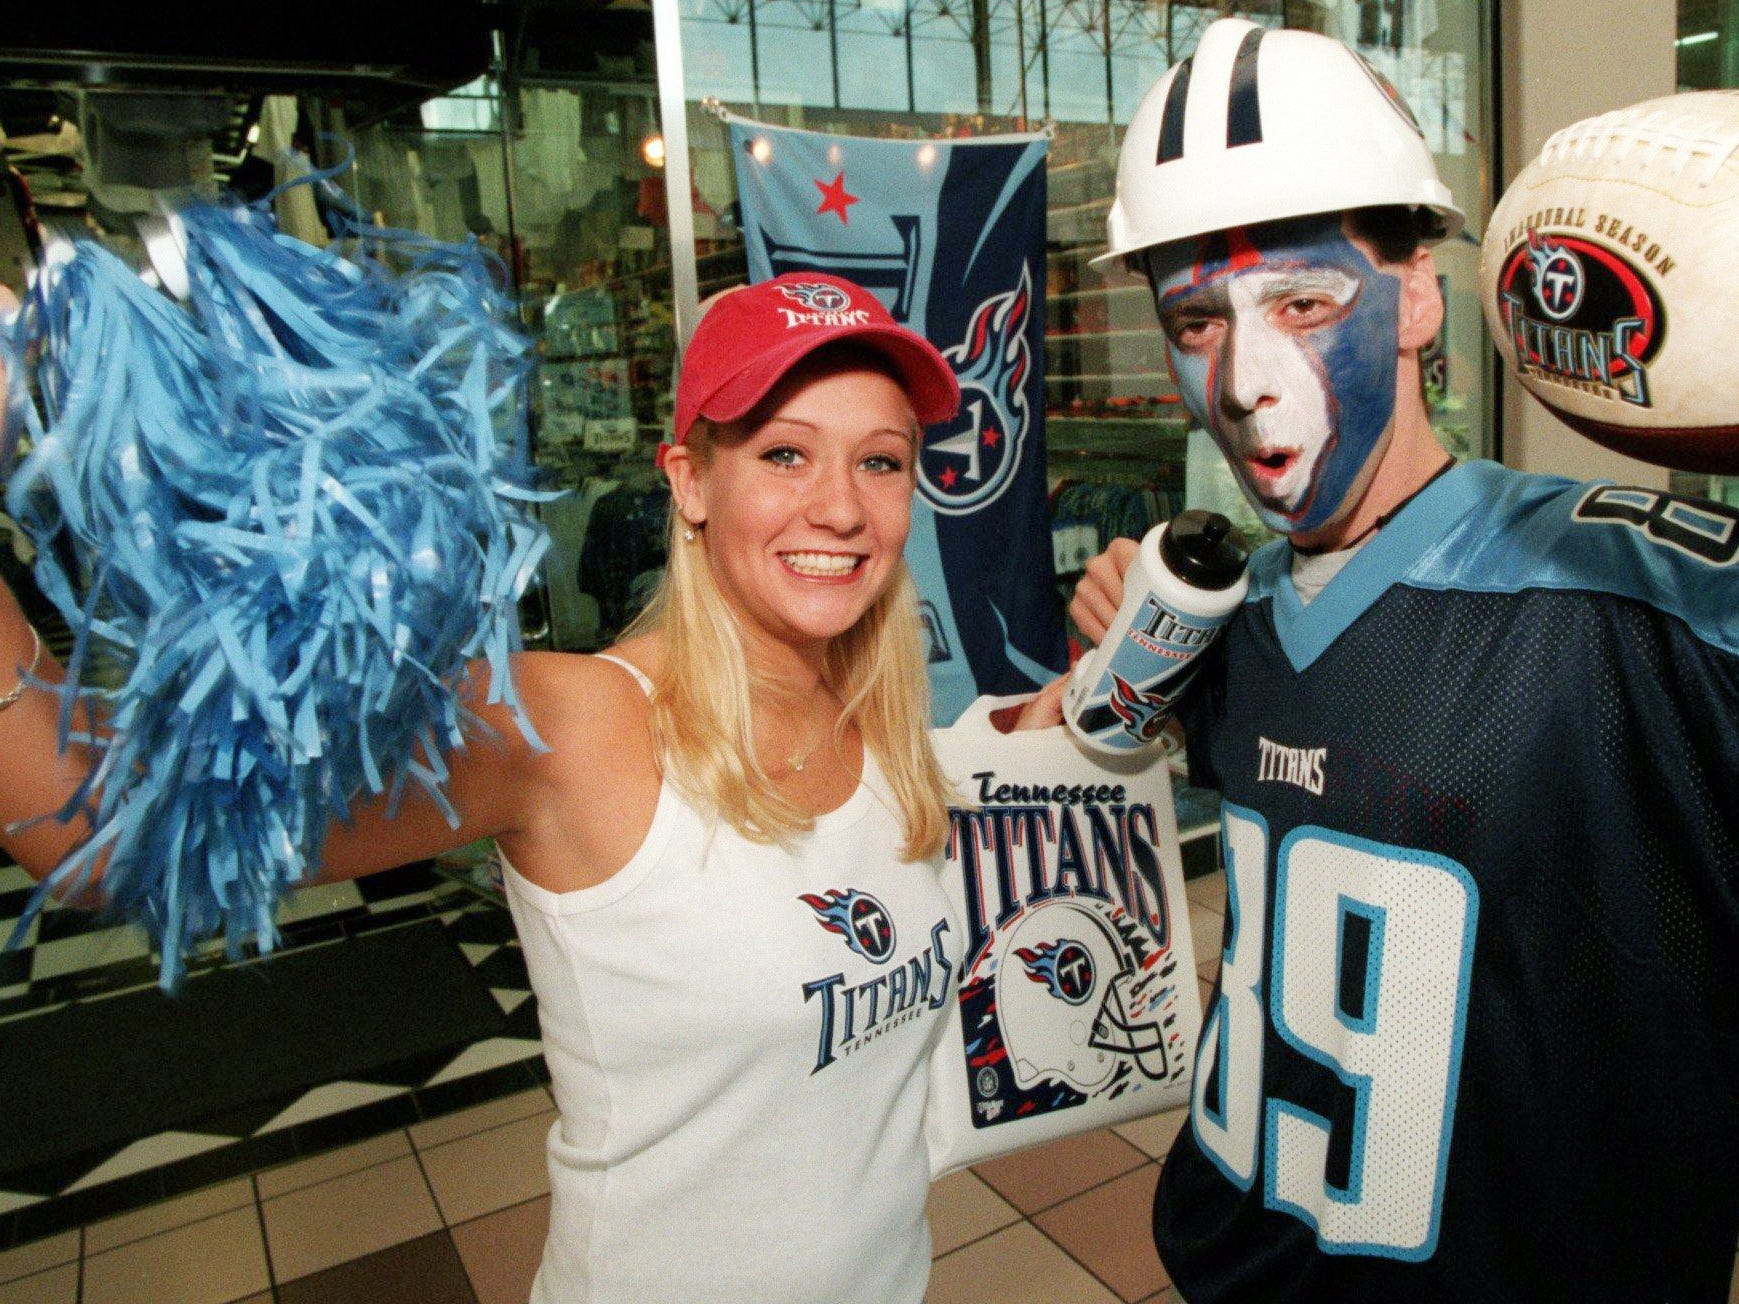 Sport Seasons employees Brandi Bagwell, left, and John Wargo wear some of the Tennessee Titans stuff like jerseys, face paint, football, pom poms, helmet, etc. to demonstrate preparation fans can make for the upcoming season Aug. 13, 1999.